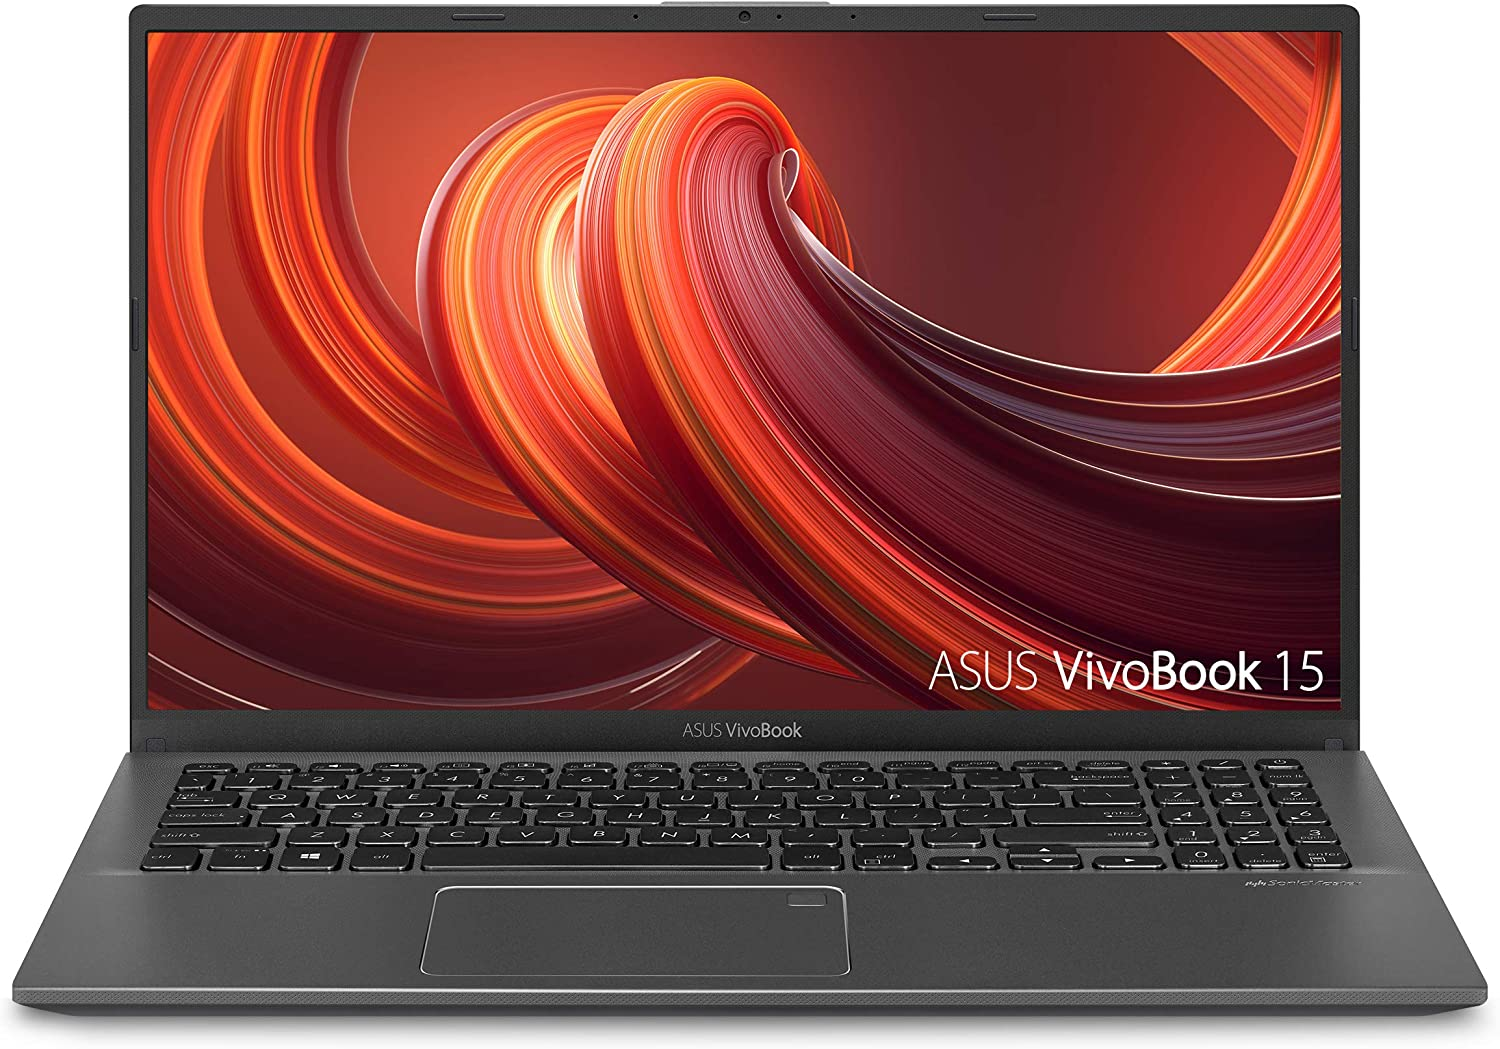 "ASUS VivoBook 15 Thin and Light Laptop, 15.6"" FHD, Intel i5-1035G1 CPU, 8GB RAM, 512GB SSD, Backlit KB, Fingerprint, Windows 10, Slate Gray, F512JA-AS54"